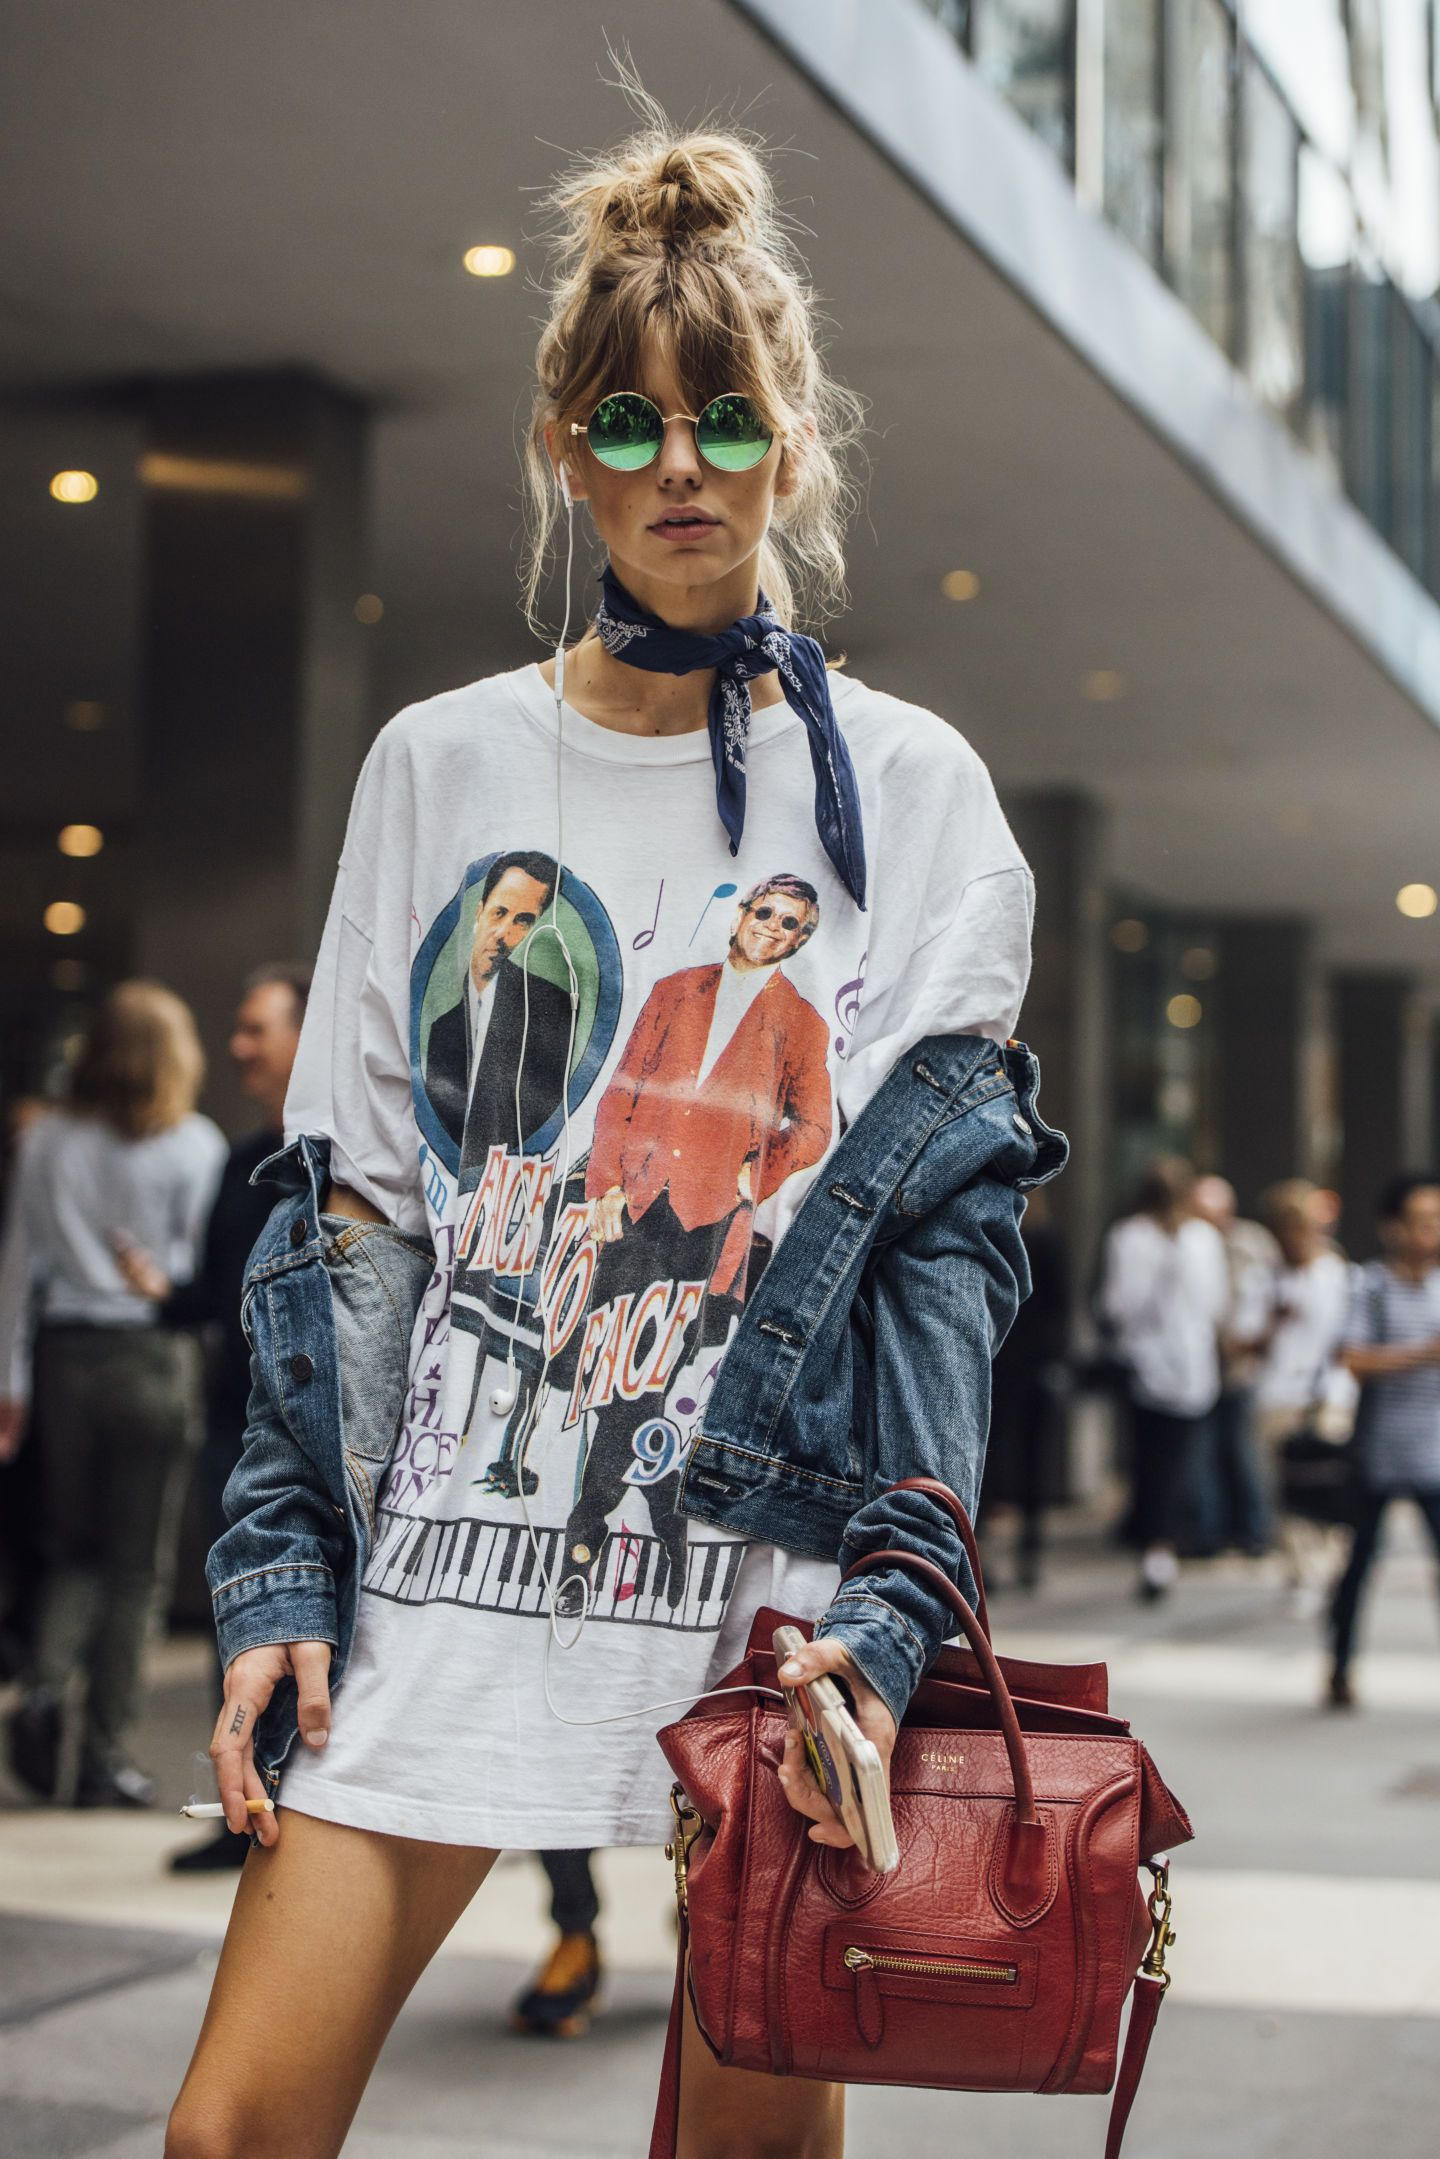 Pin By Victoria Biain On Dressed Fashion Street Style Street Style Grunge